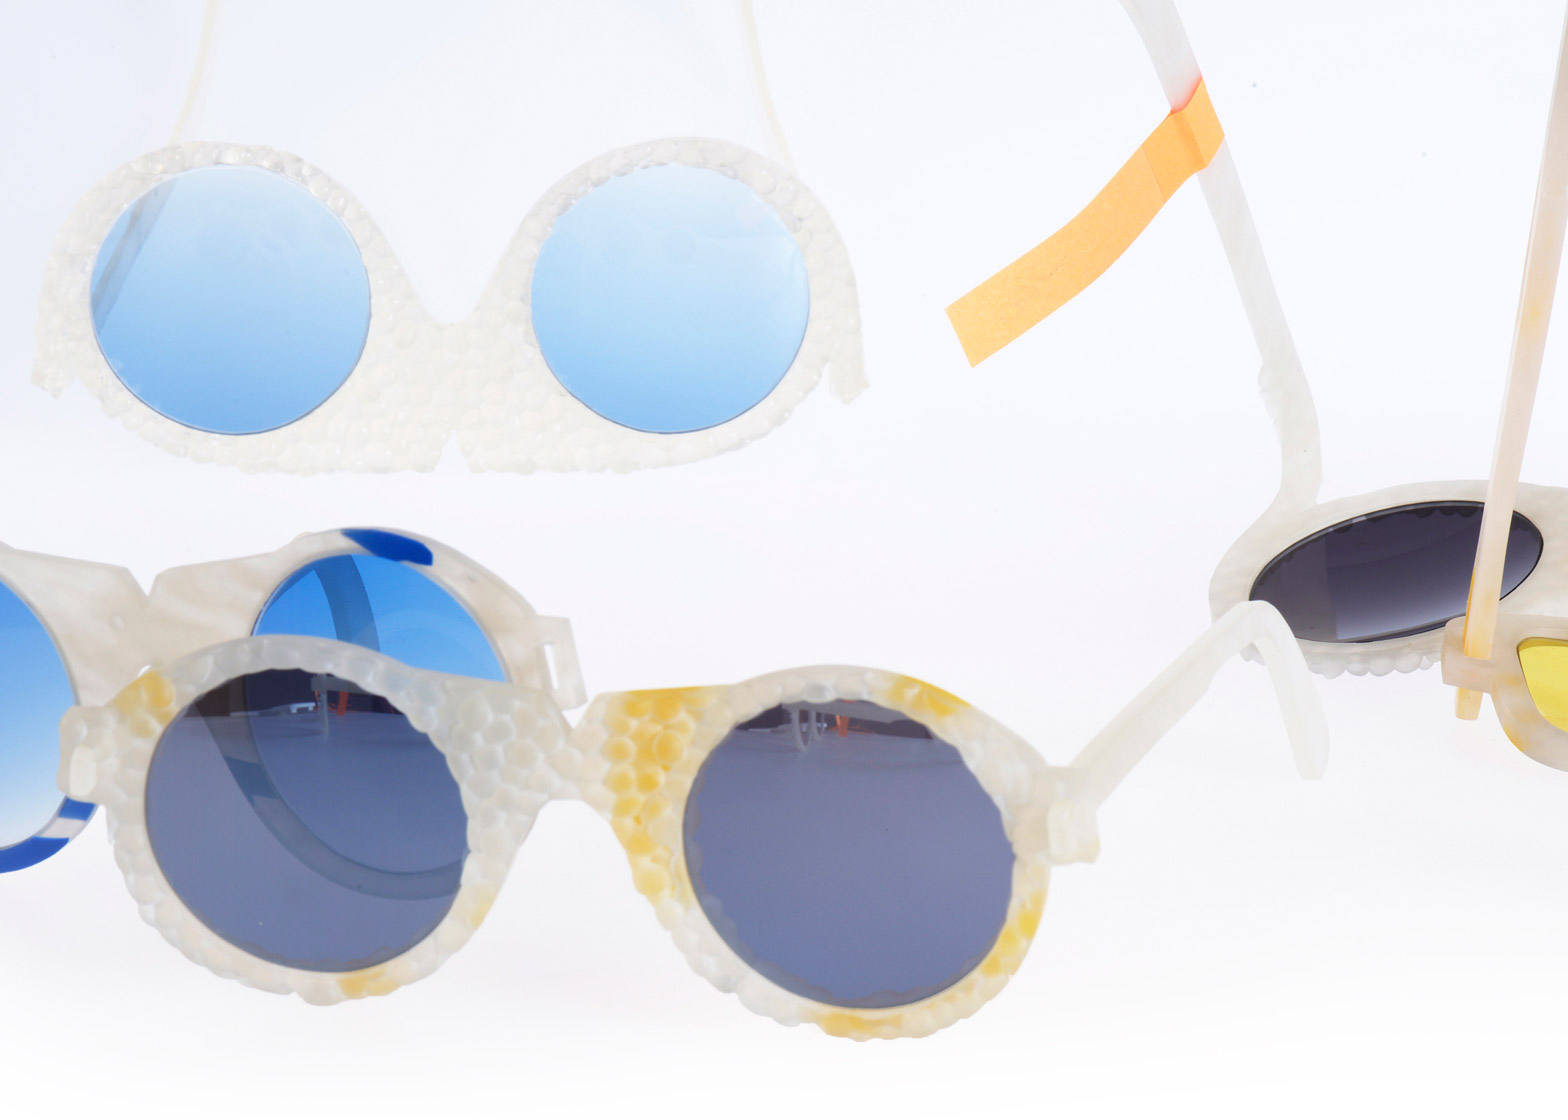 109160a6172 Crafting Plastics designs translucent bioplastic sunglasses